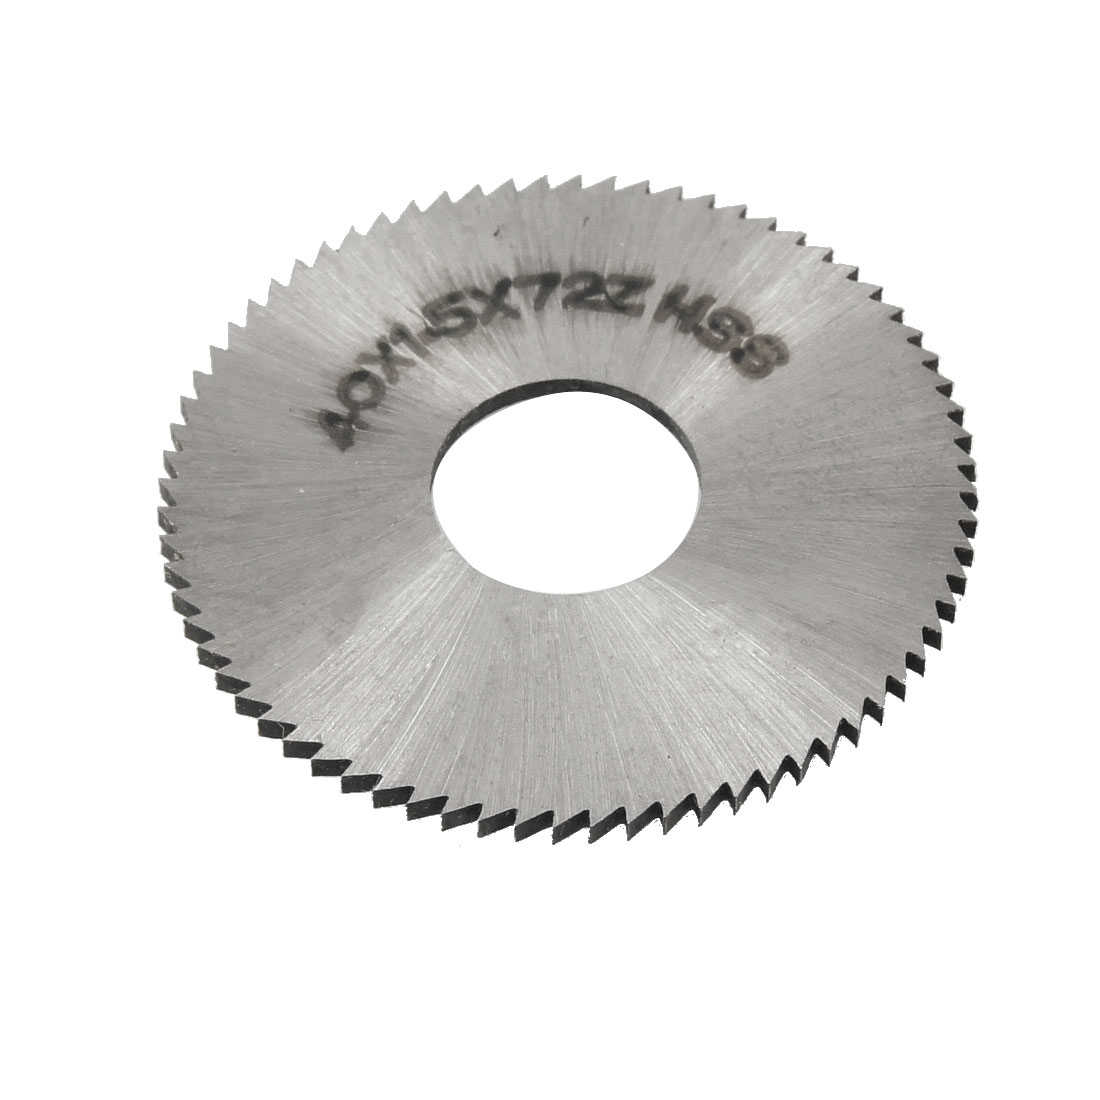 Unique Bargains 72T 40mm OD 1.5mm Thickness HSS Circular Slitting Saw